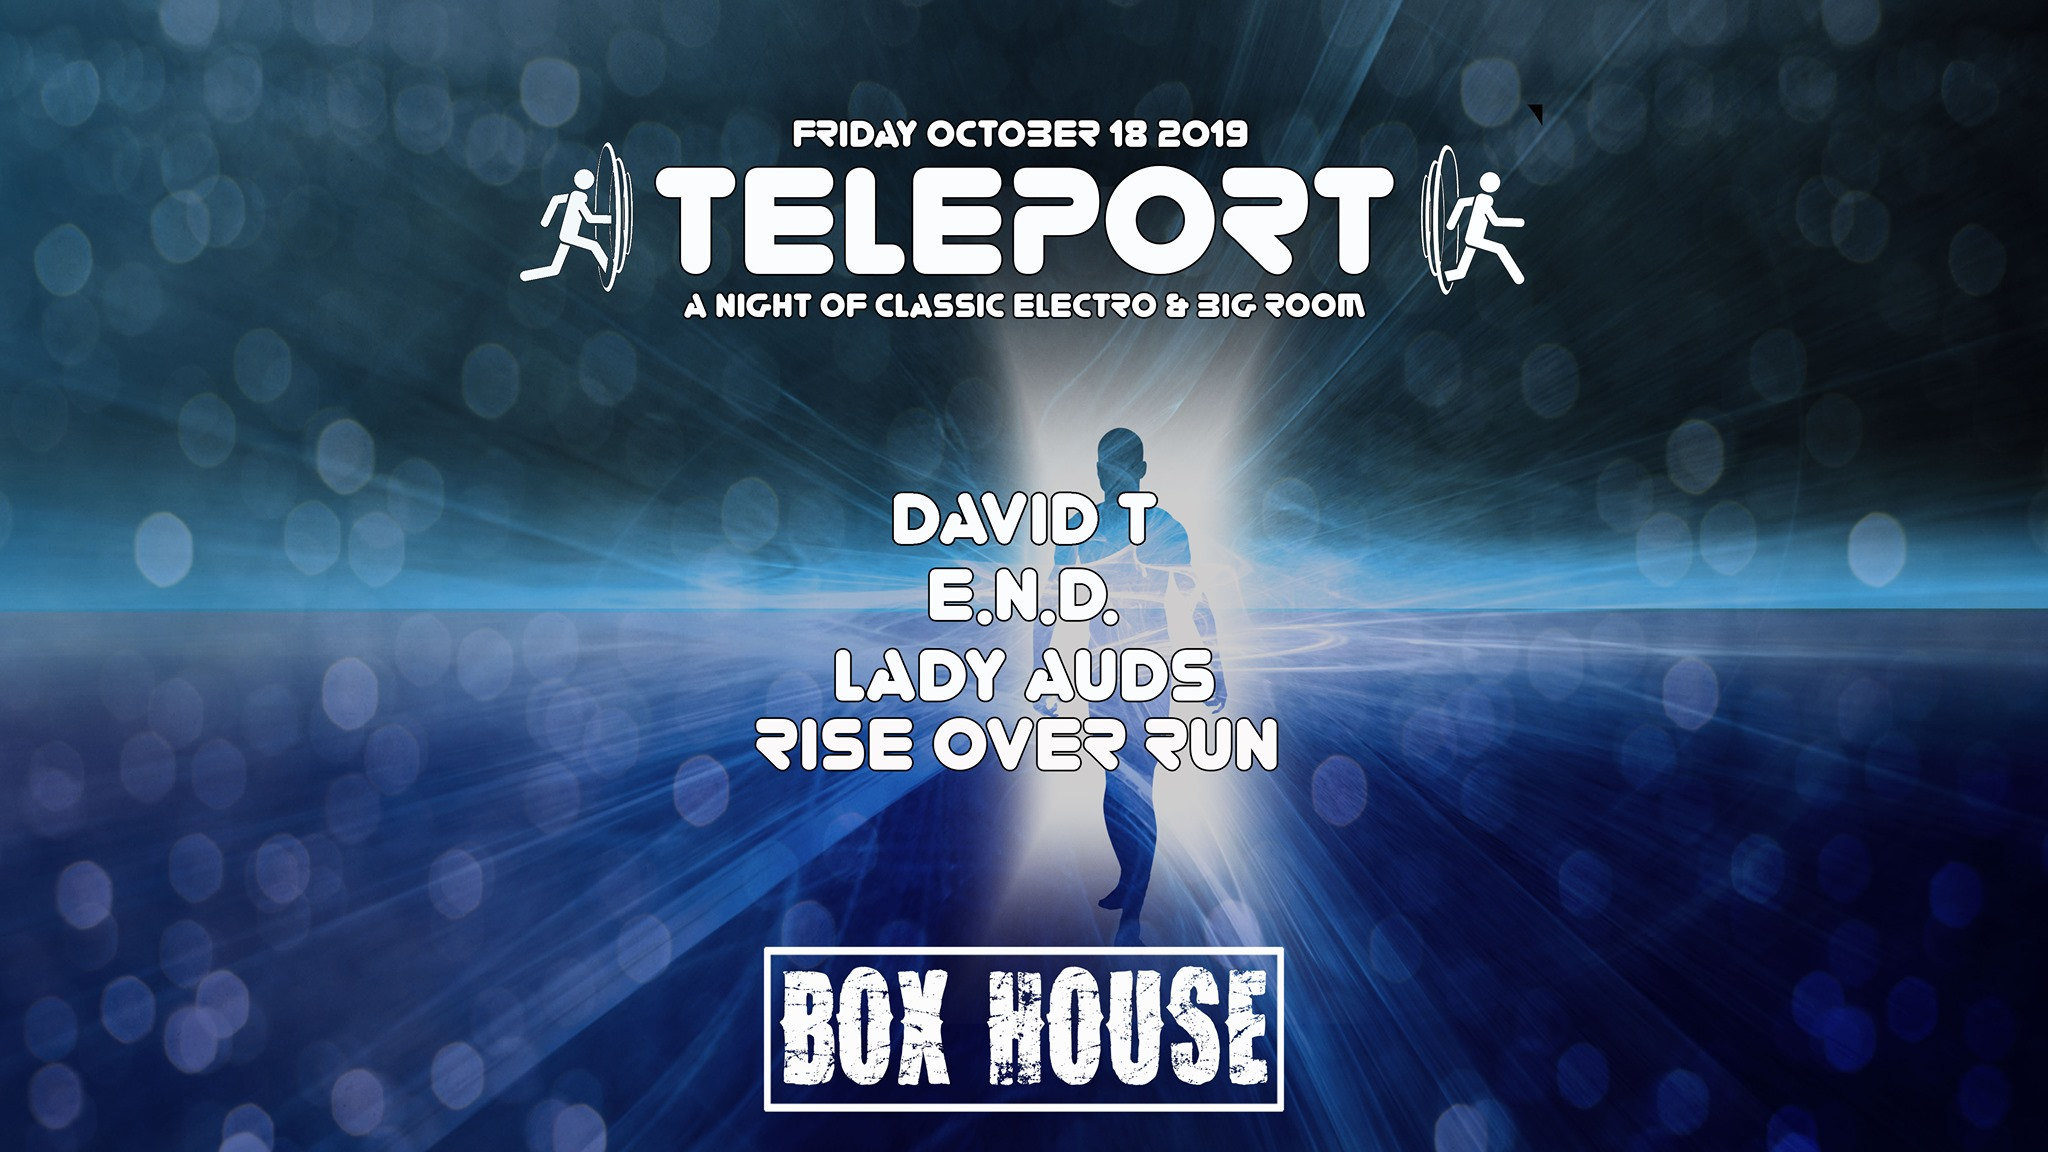 Teleport Electro Seattle